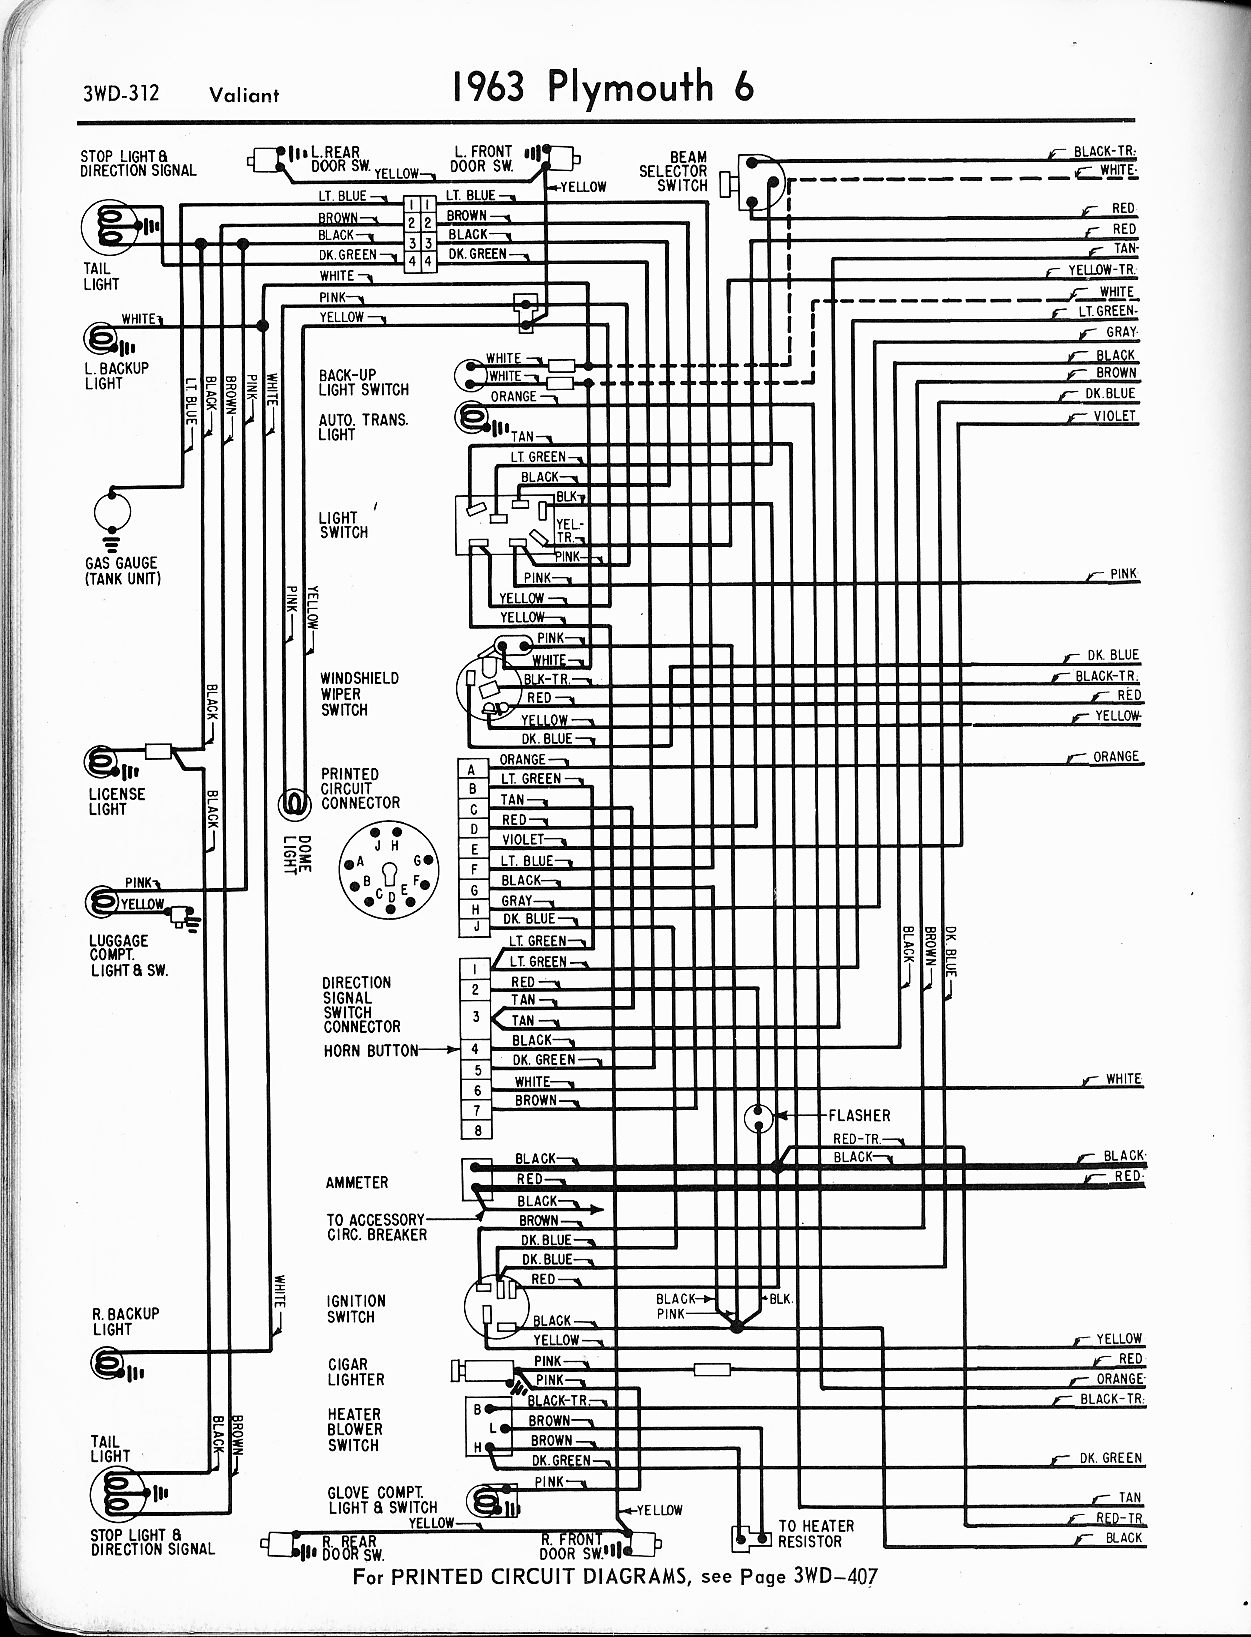 1973 plymouth barracuda fuse box diagram wiring diagram data schema 1974 plymouth barracuda 1966 plymouth barracuda fuse box wiring wiring diagram hub 1963 plymouth barracuda 1973 plymouth barracuda fuse box diagram